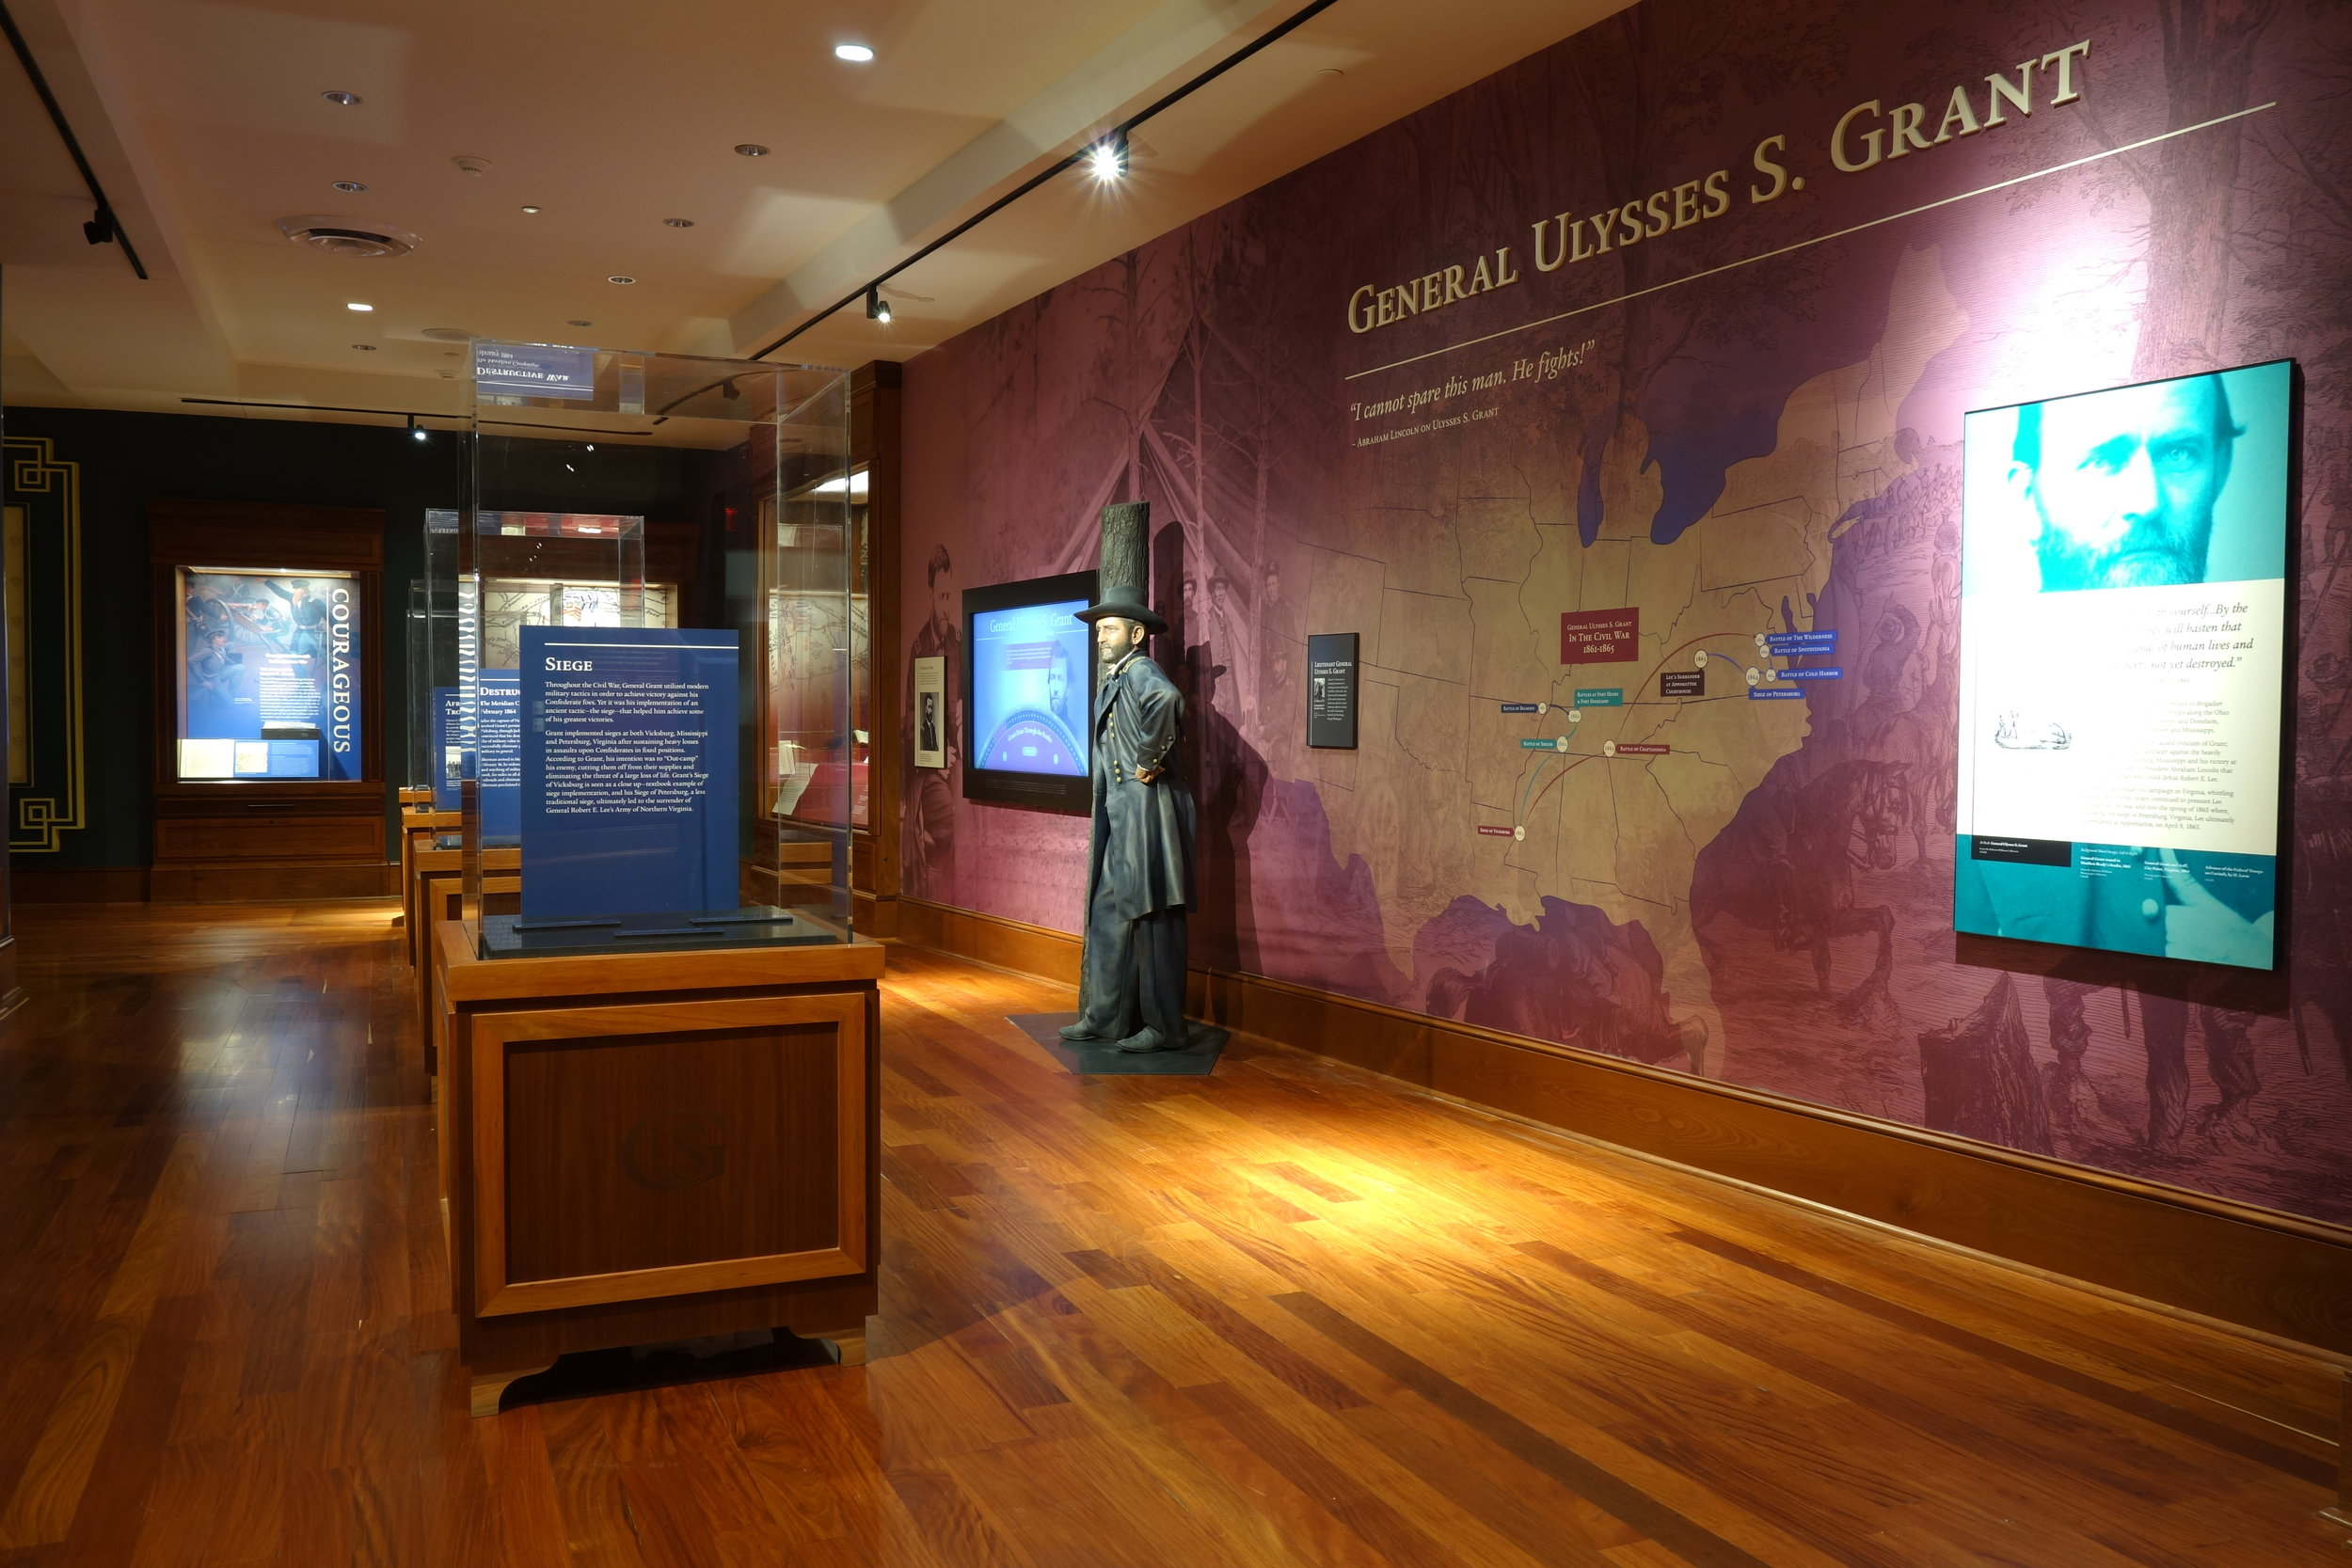 Extensive use of wall-murals as well as dimensional lettering and graphic panels brings depth and interest to the exhibit.